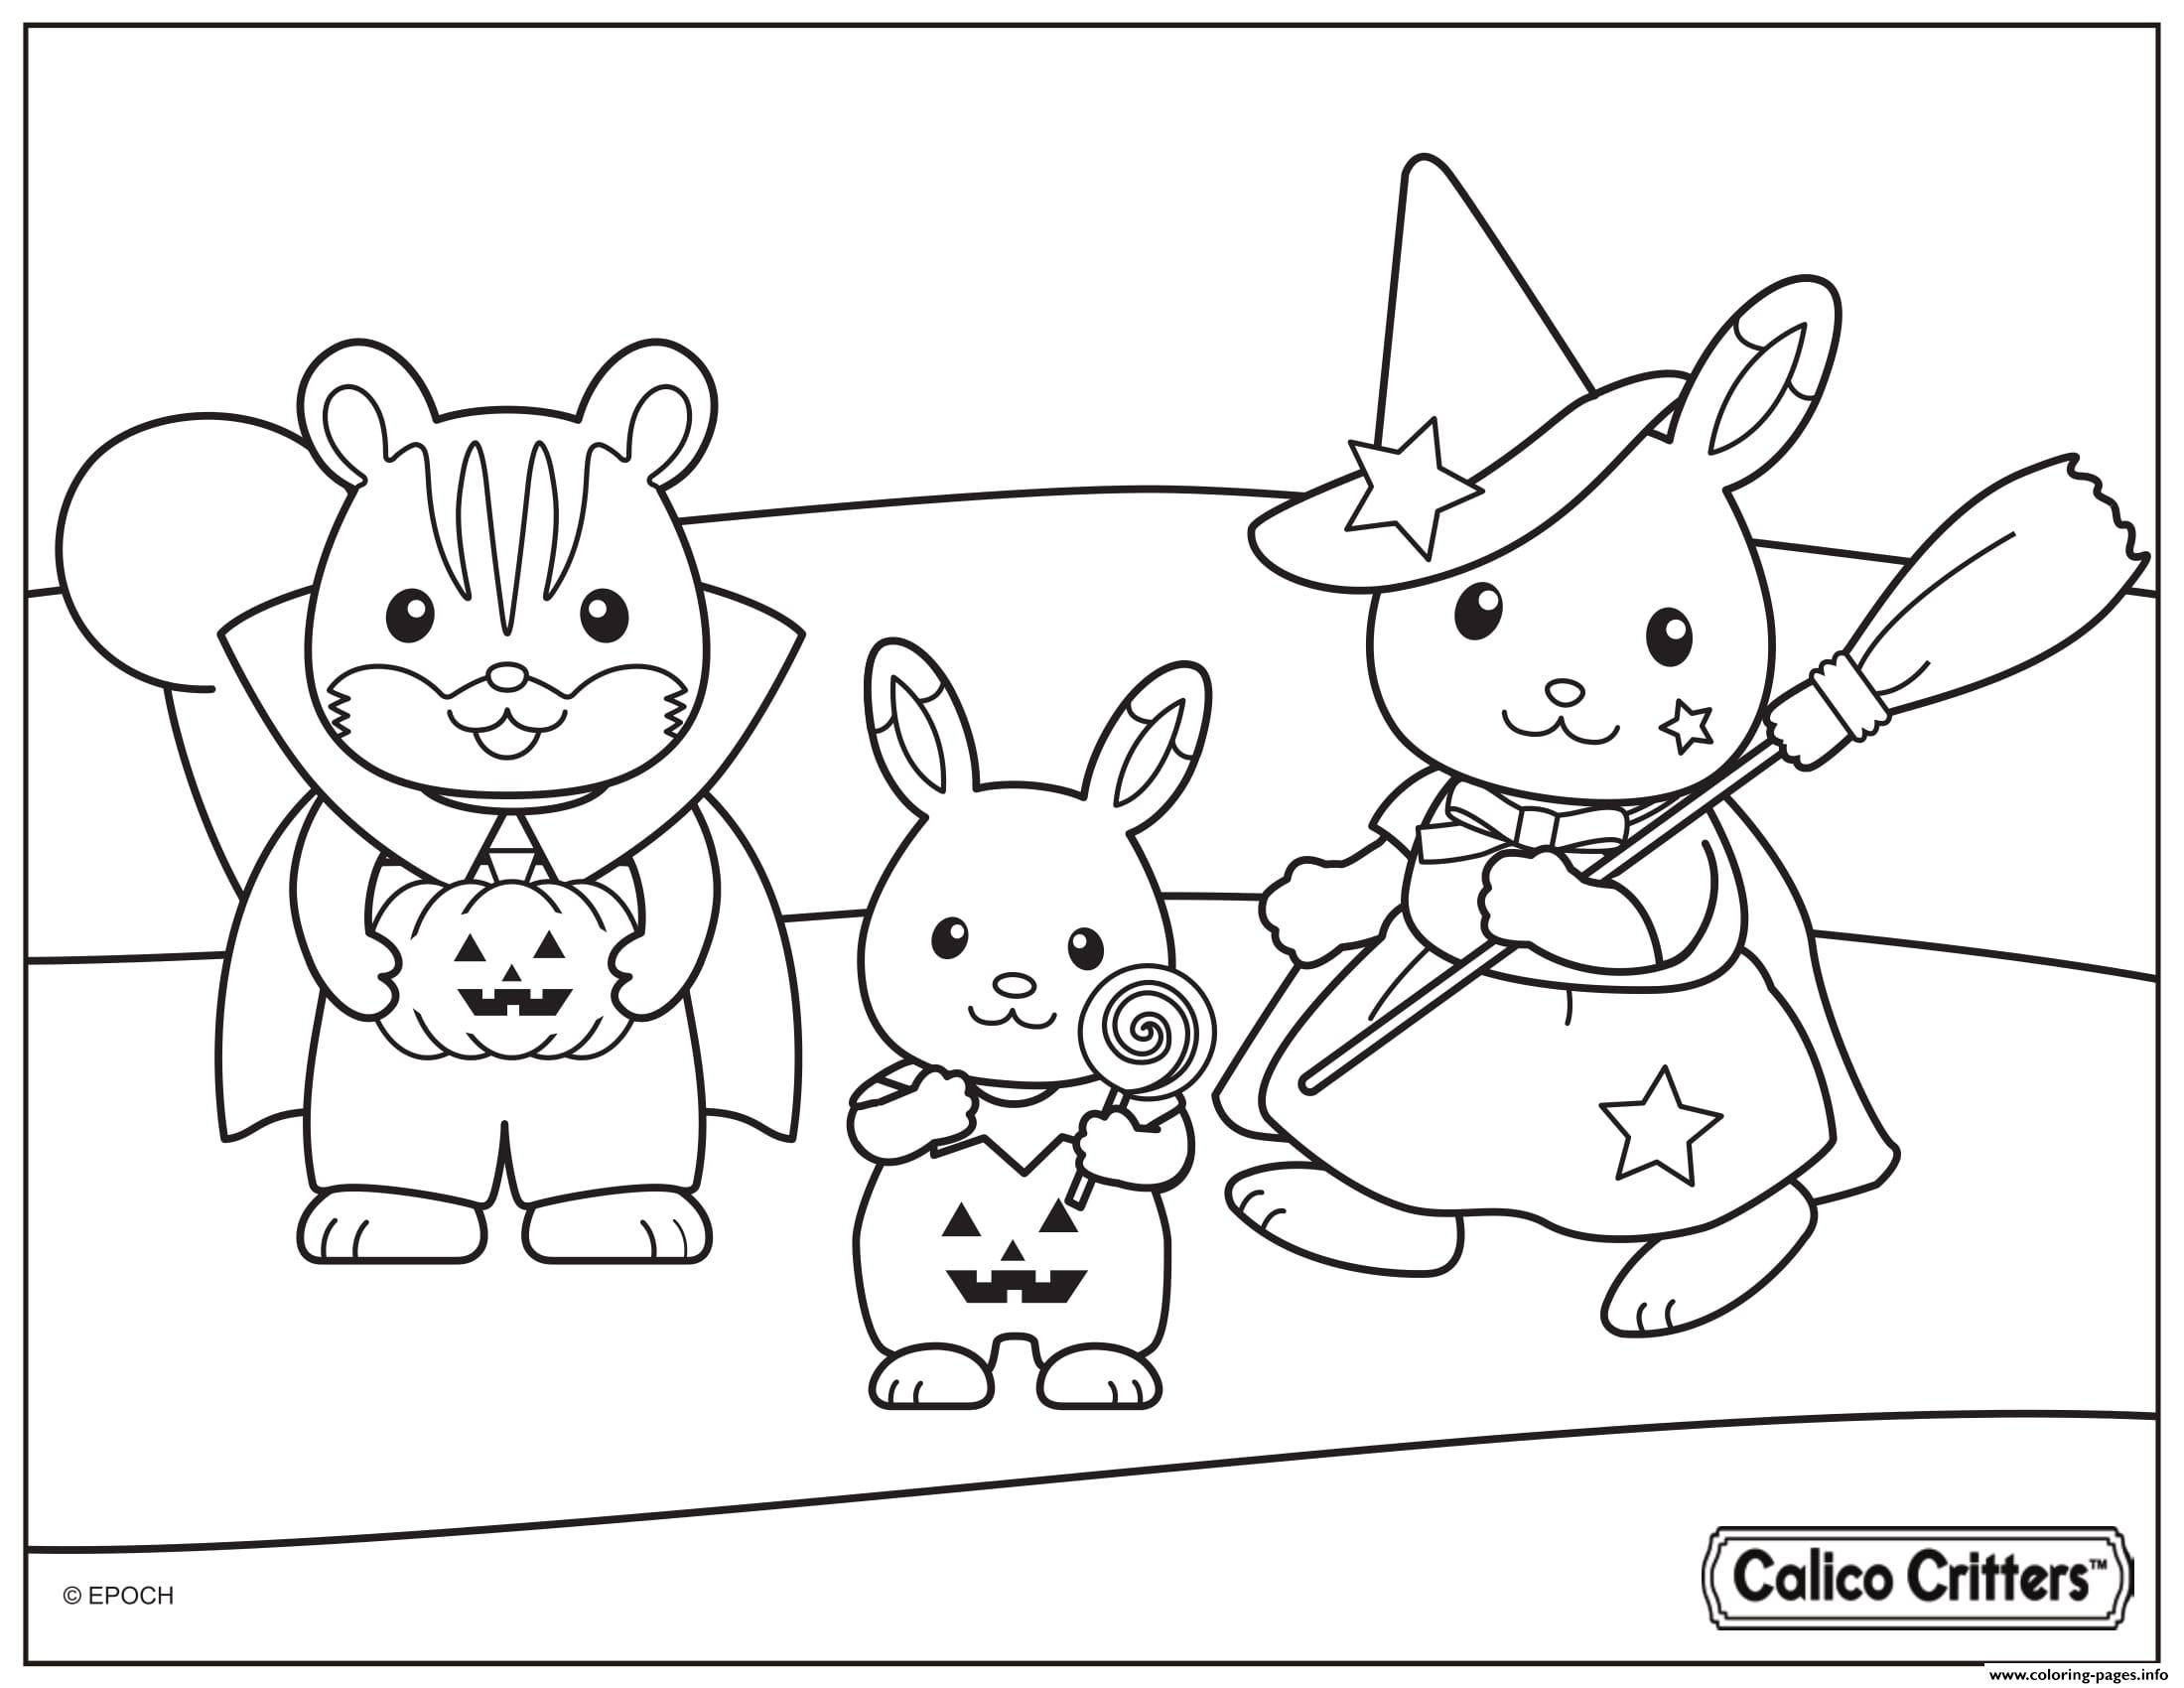 Calico Critters Halloween Costumes Coloring Pages Printable